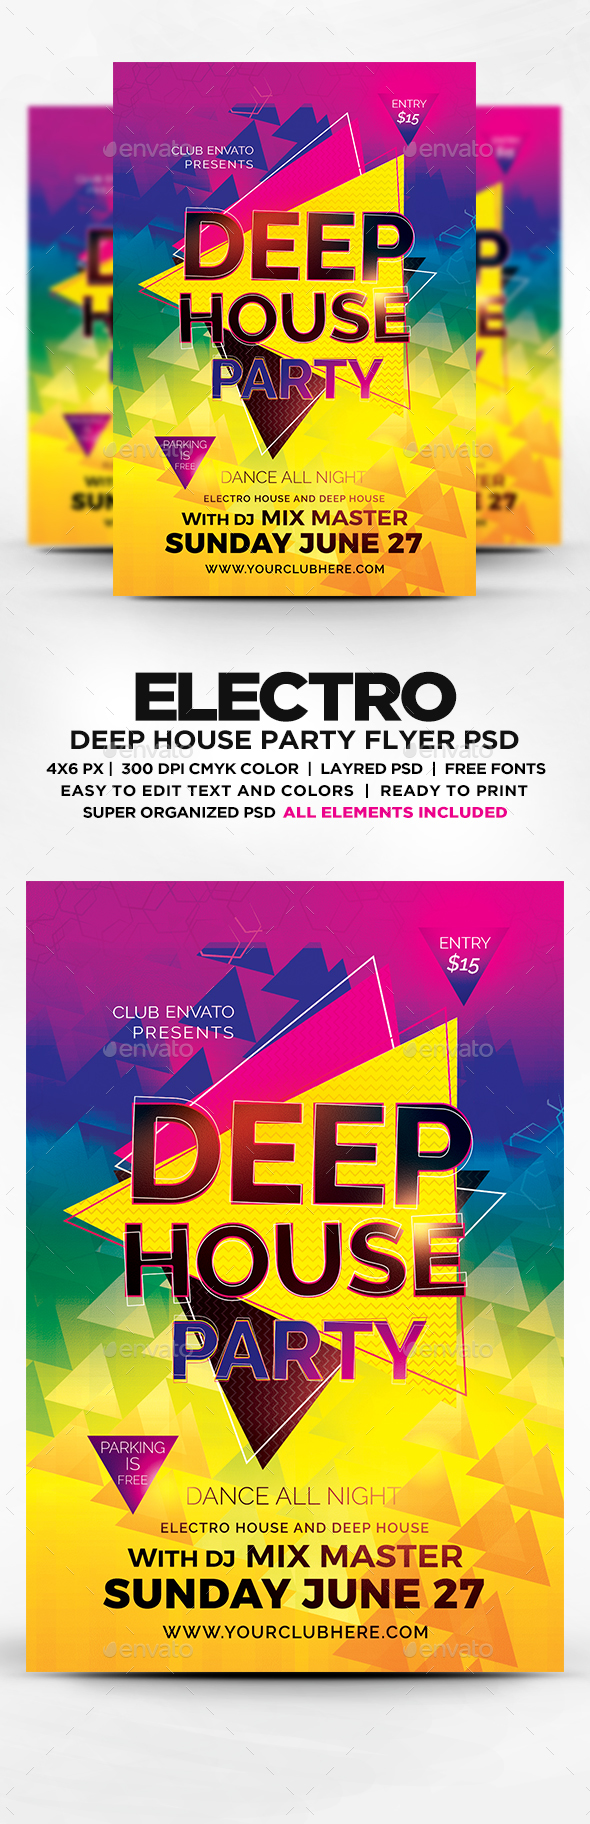 Deep house party flyer template psd download here http deep house party flyer template psd download here httpgraphicriver saigontimesfo